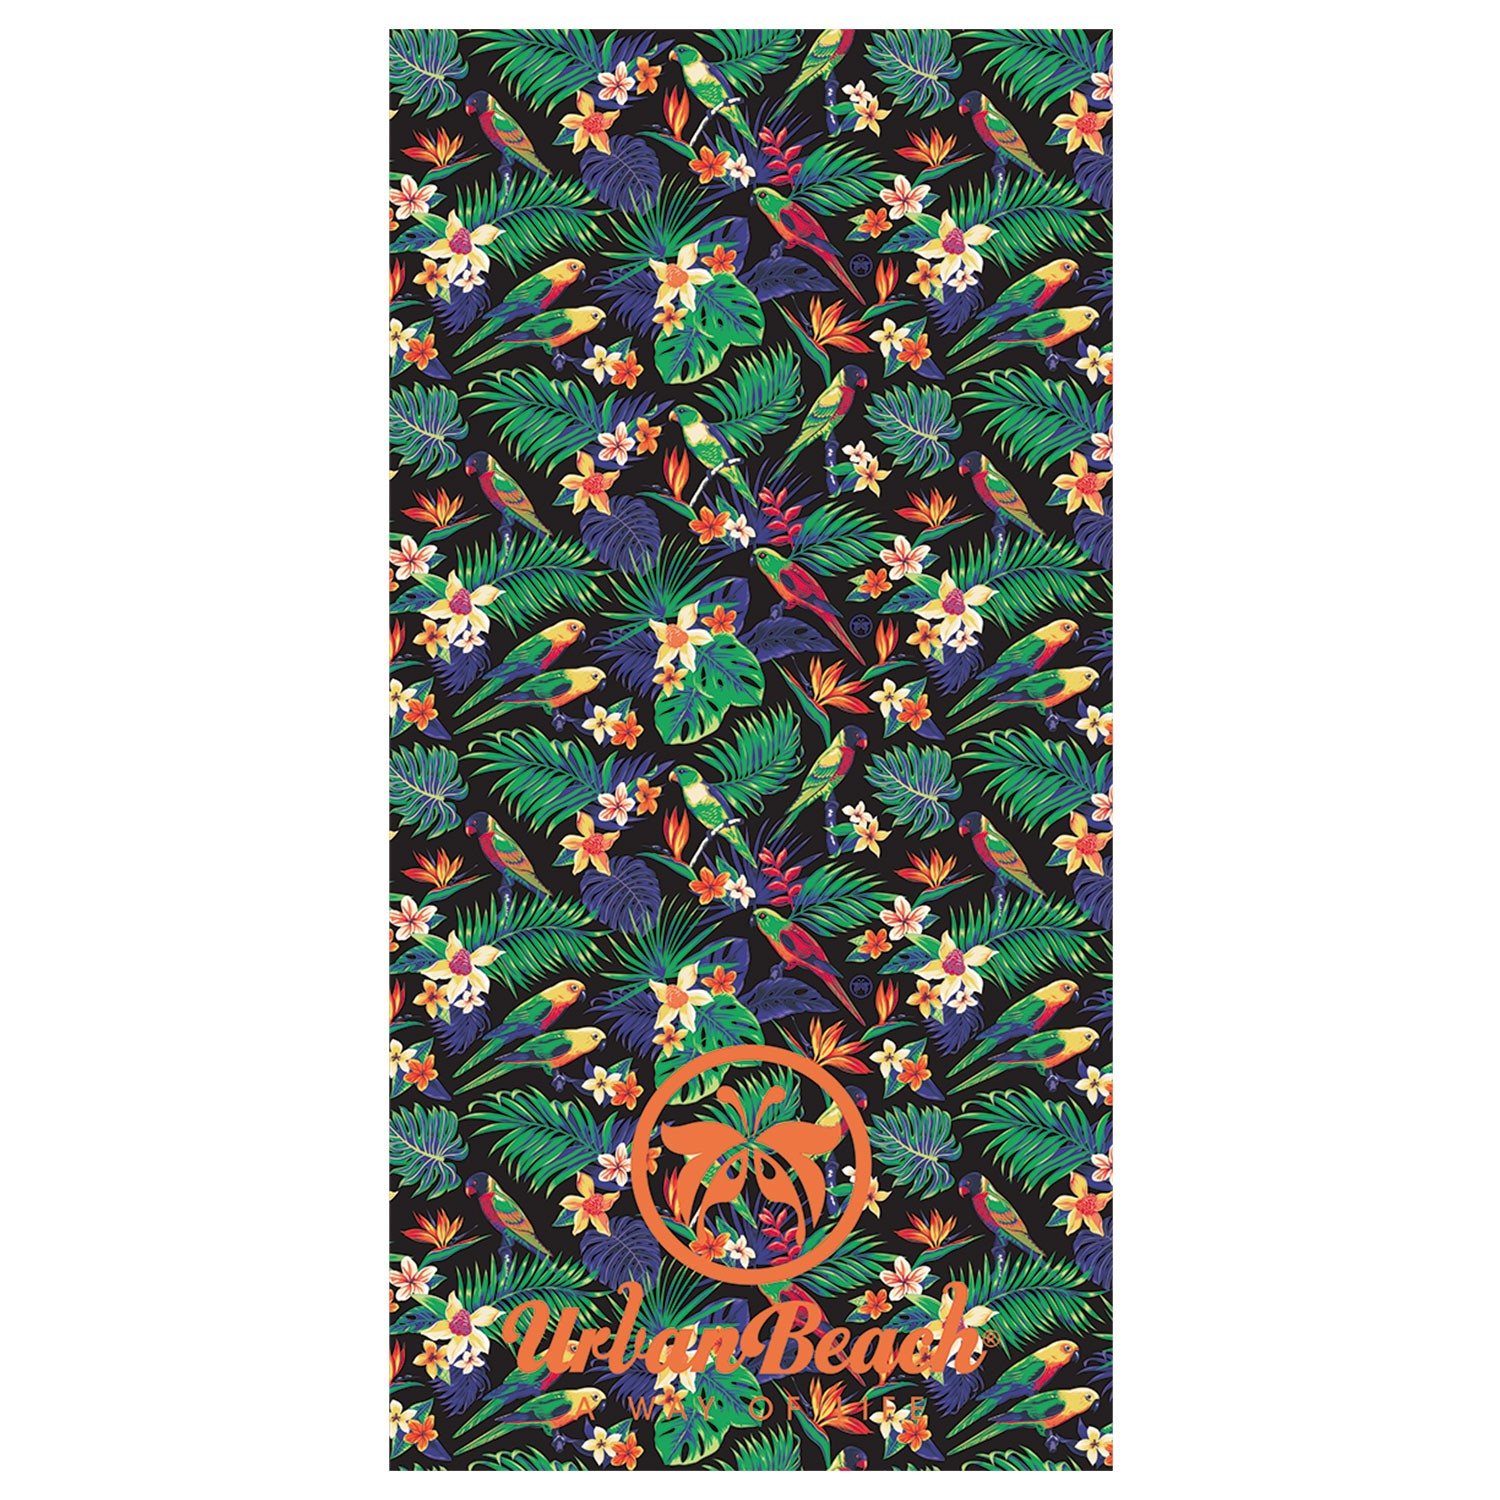 Tropical Beach Towel Jungle Free Delivery Over 163 20